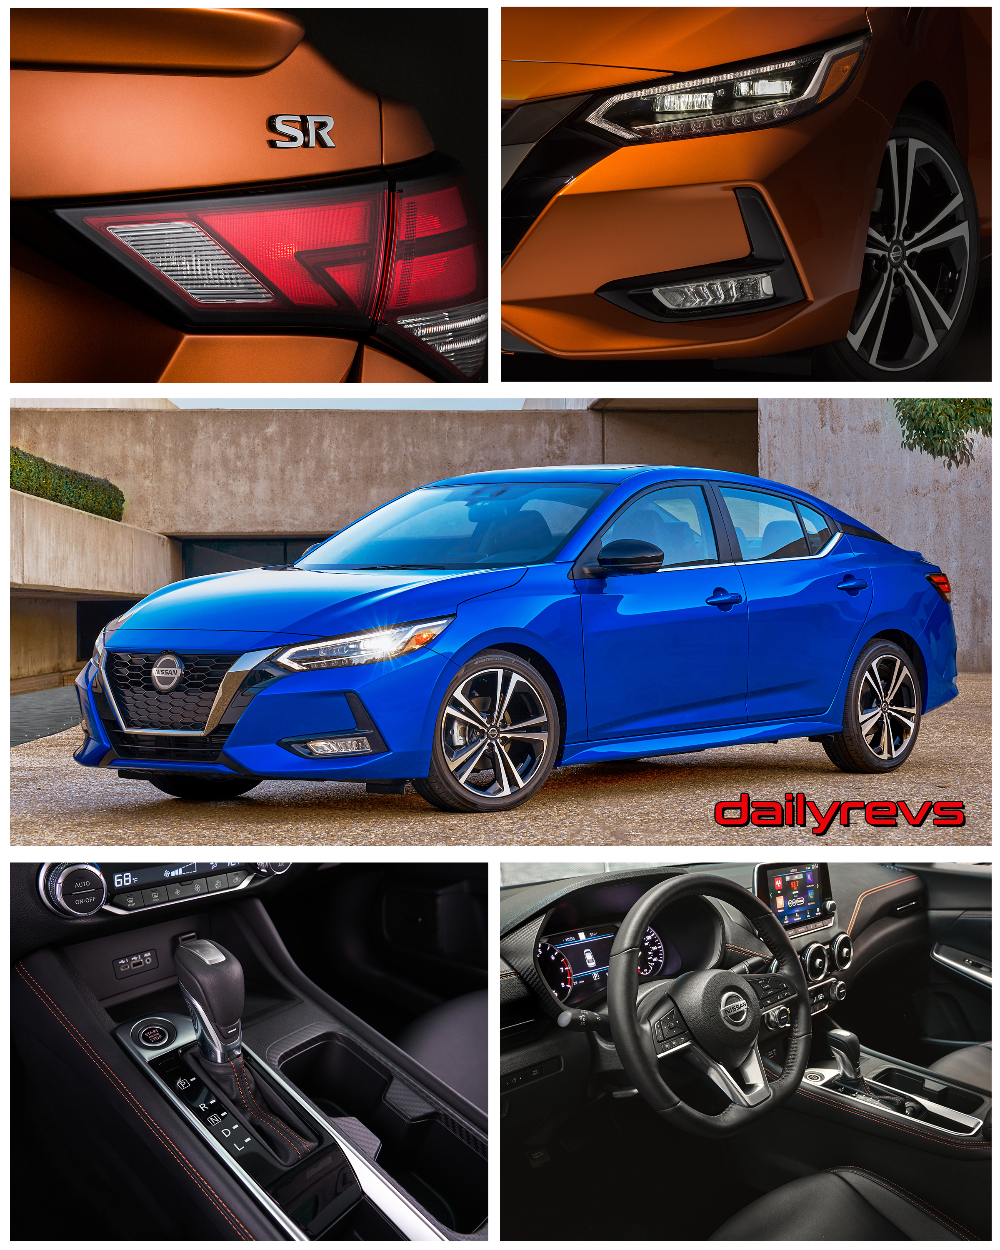 2020 Nissan Sentra HD Pictures, Videos, Specs